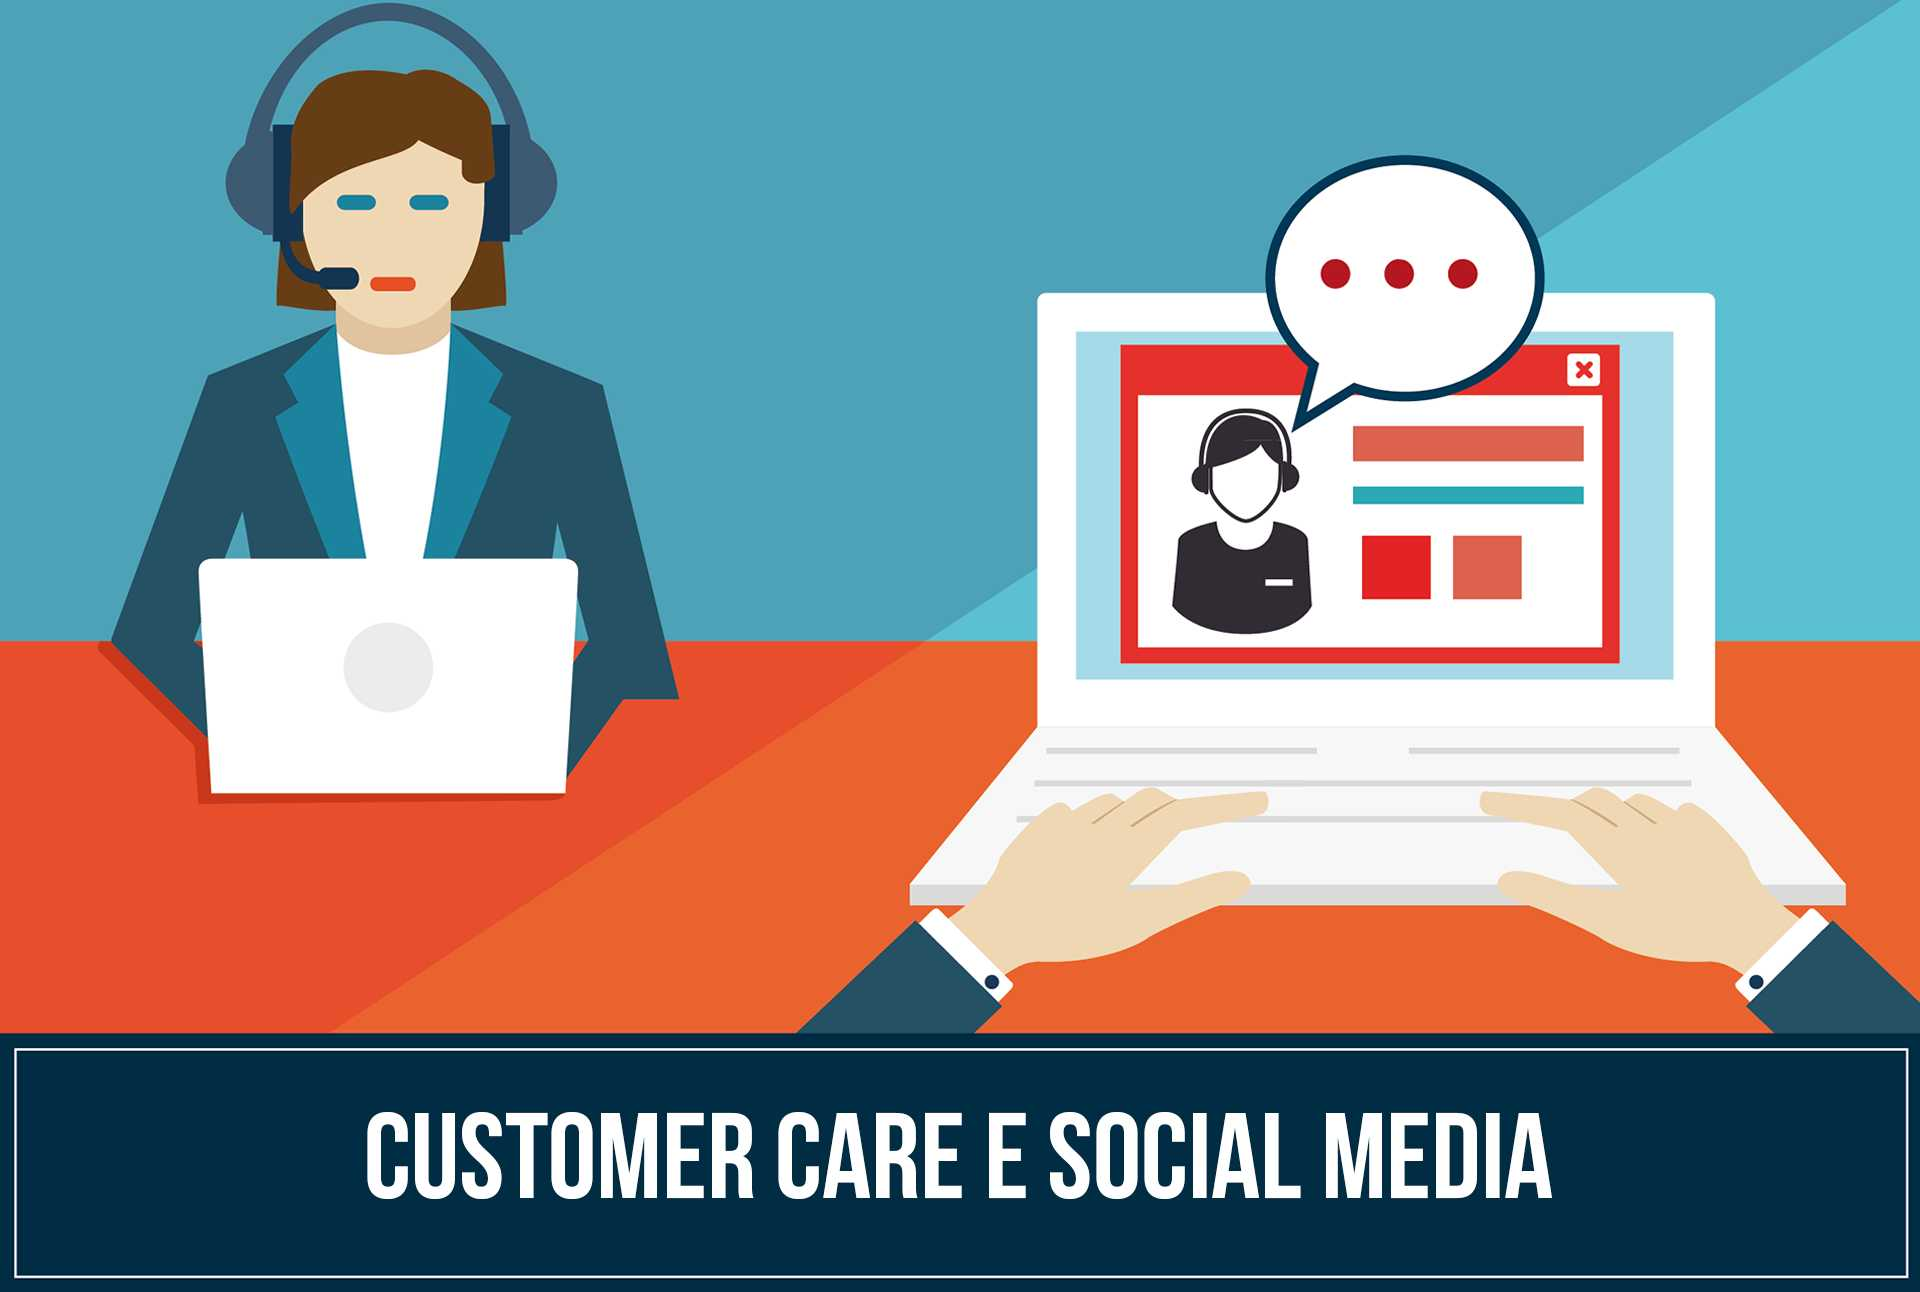 Customer Service e social media: un'opportunità di dialogo